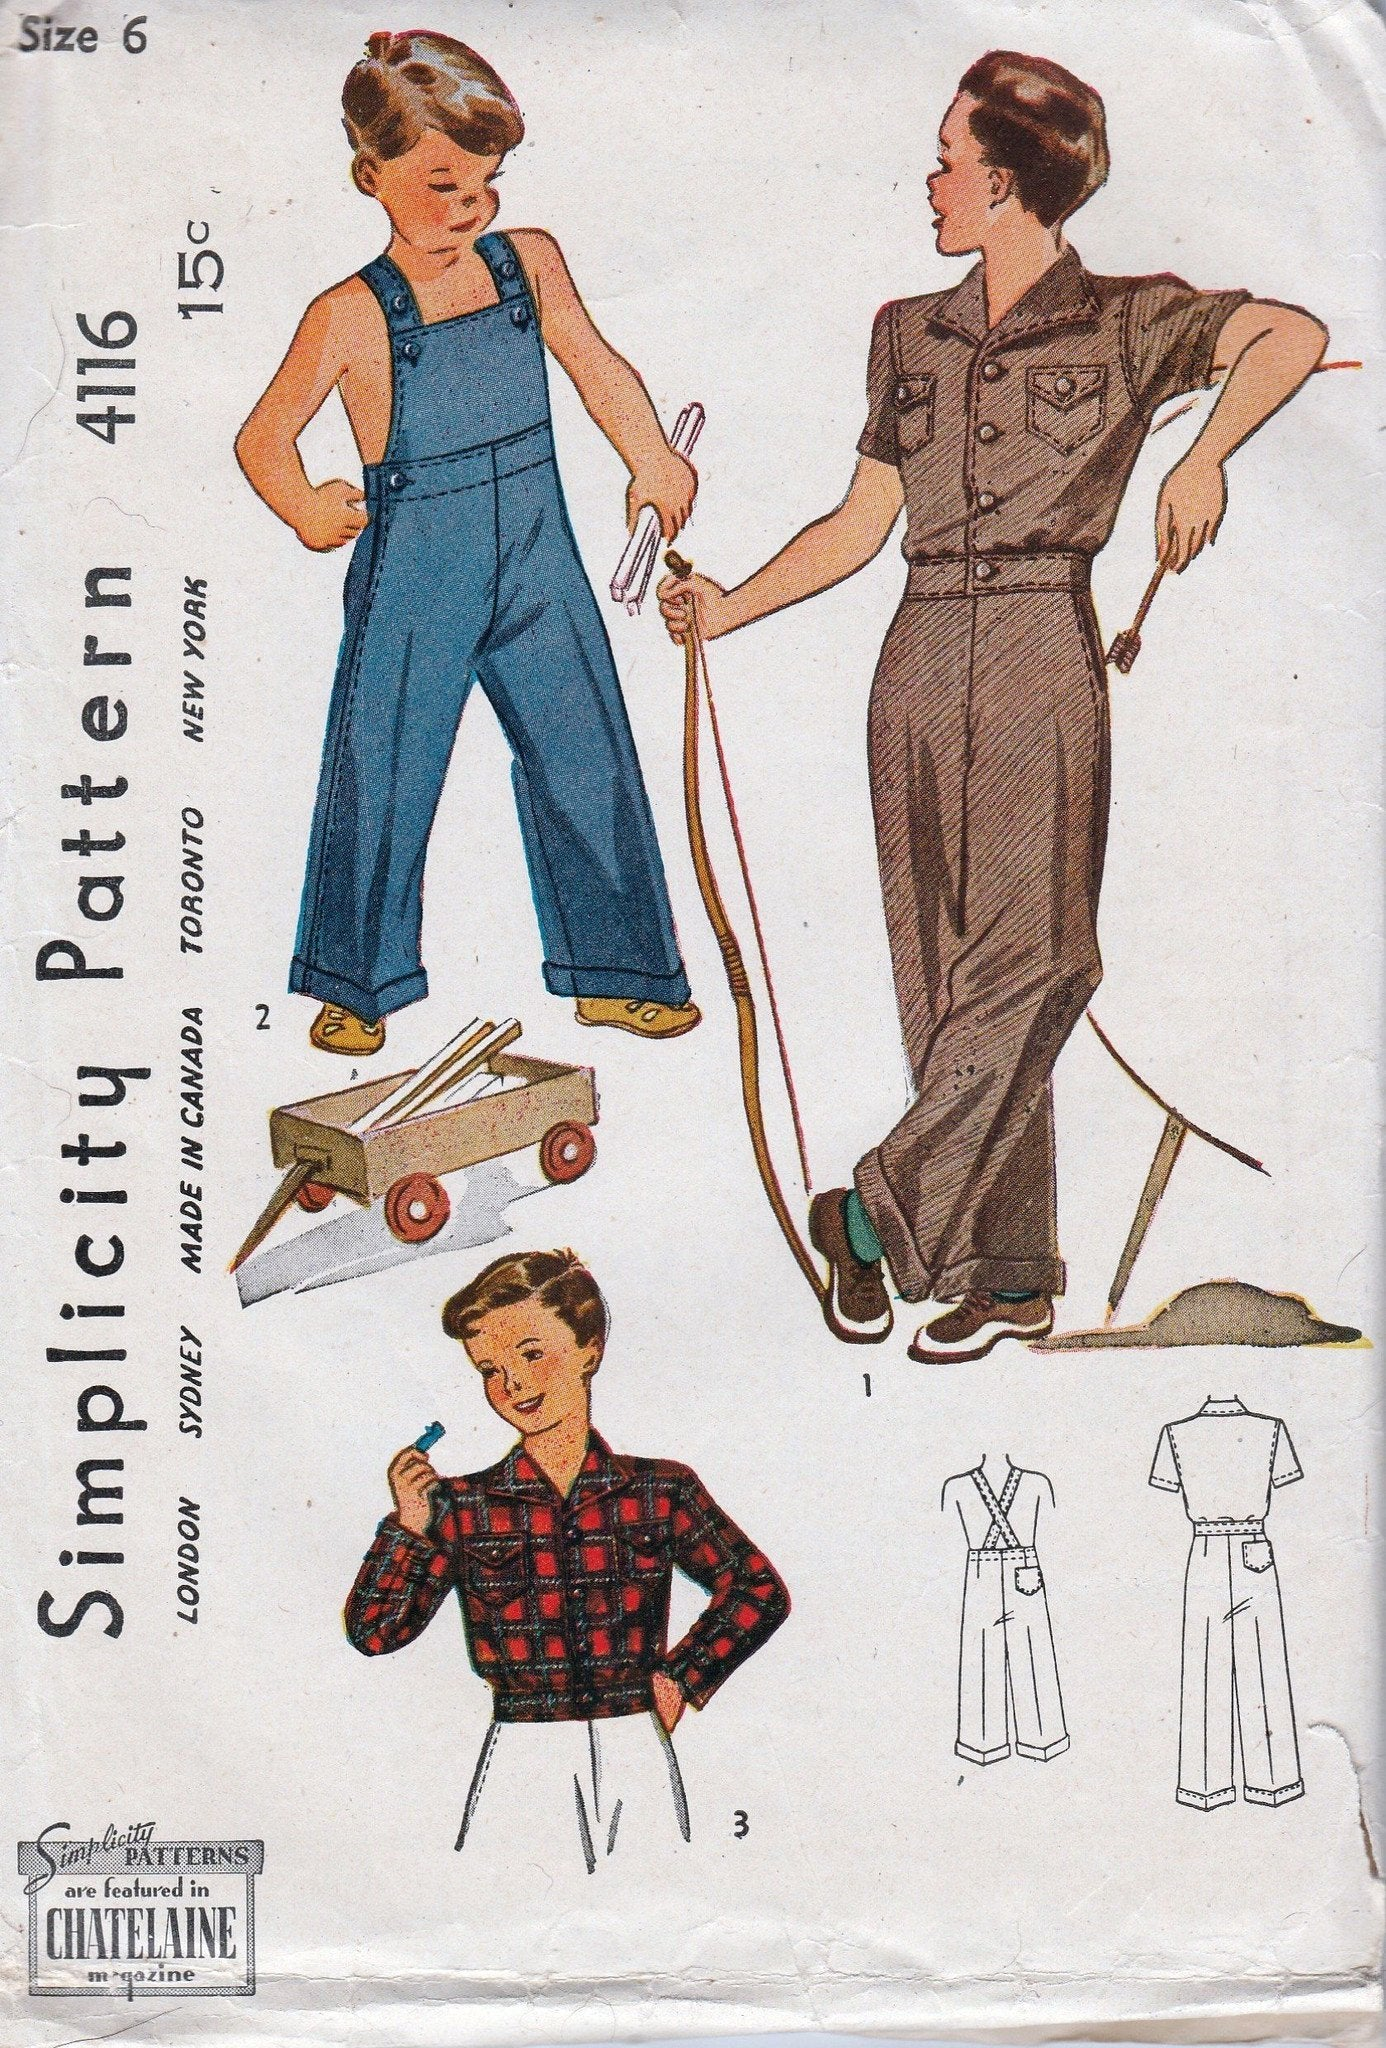 Simplicity 4116 Young Boys Overalls Lumber Jacket Vintage Pattern 1940's - VintageStitching - Vintage Sewing Patterns